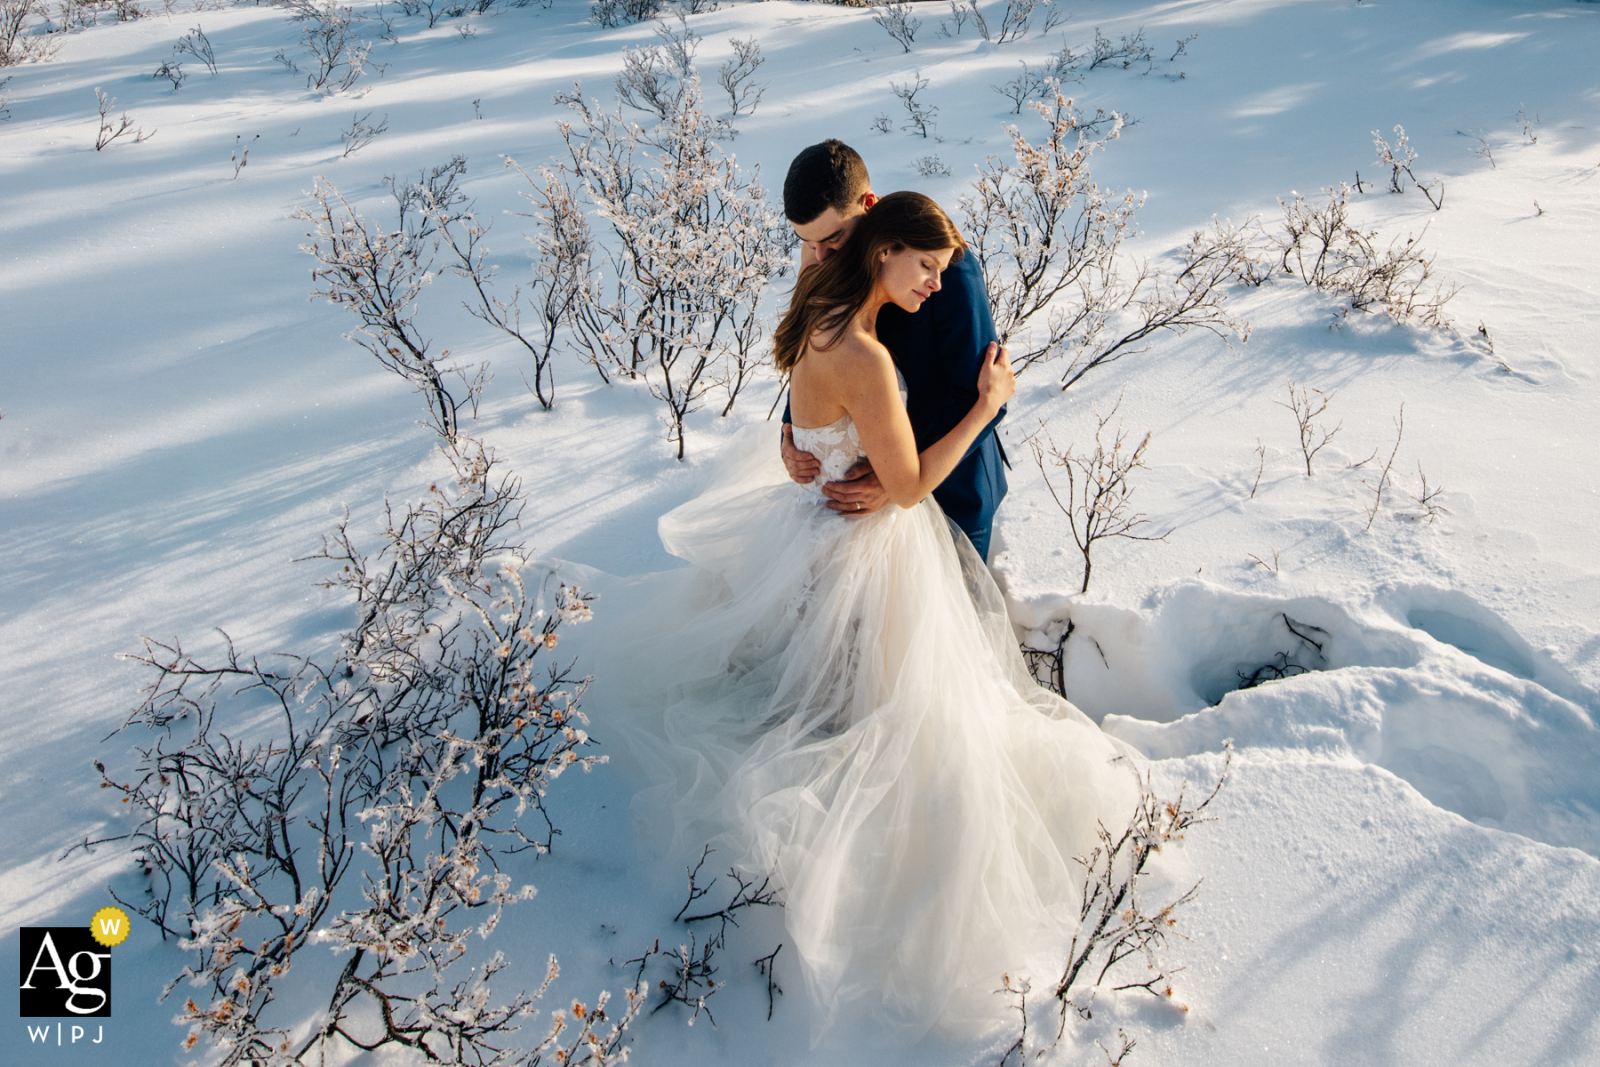 Winter Wonderland wedding photo of a couple embracing in a snowy landscape at Bow Lake in Alberta, Canada